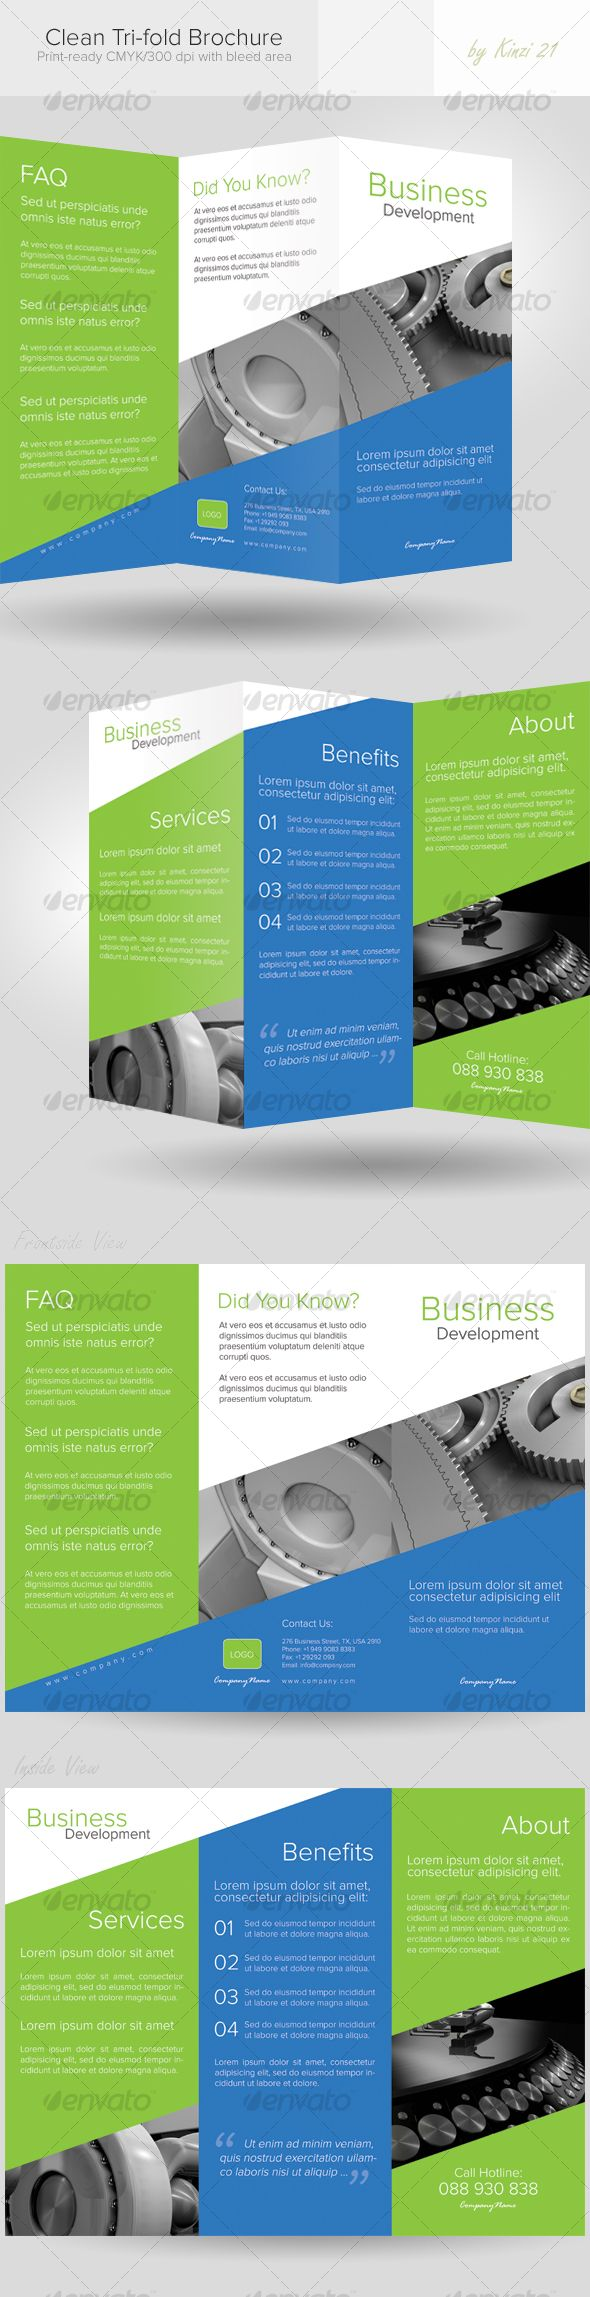 Clean Trifold Brochure – Information Pamphlet Template